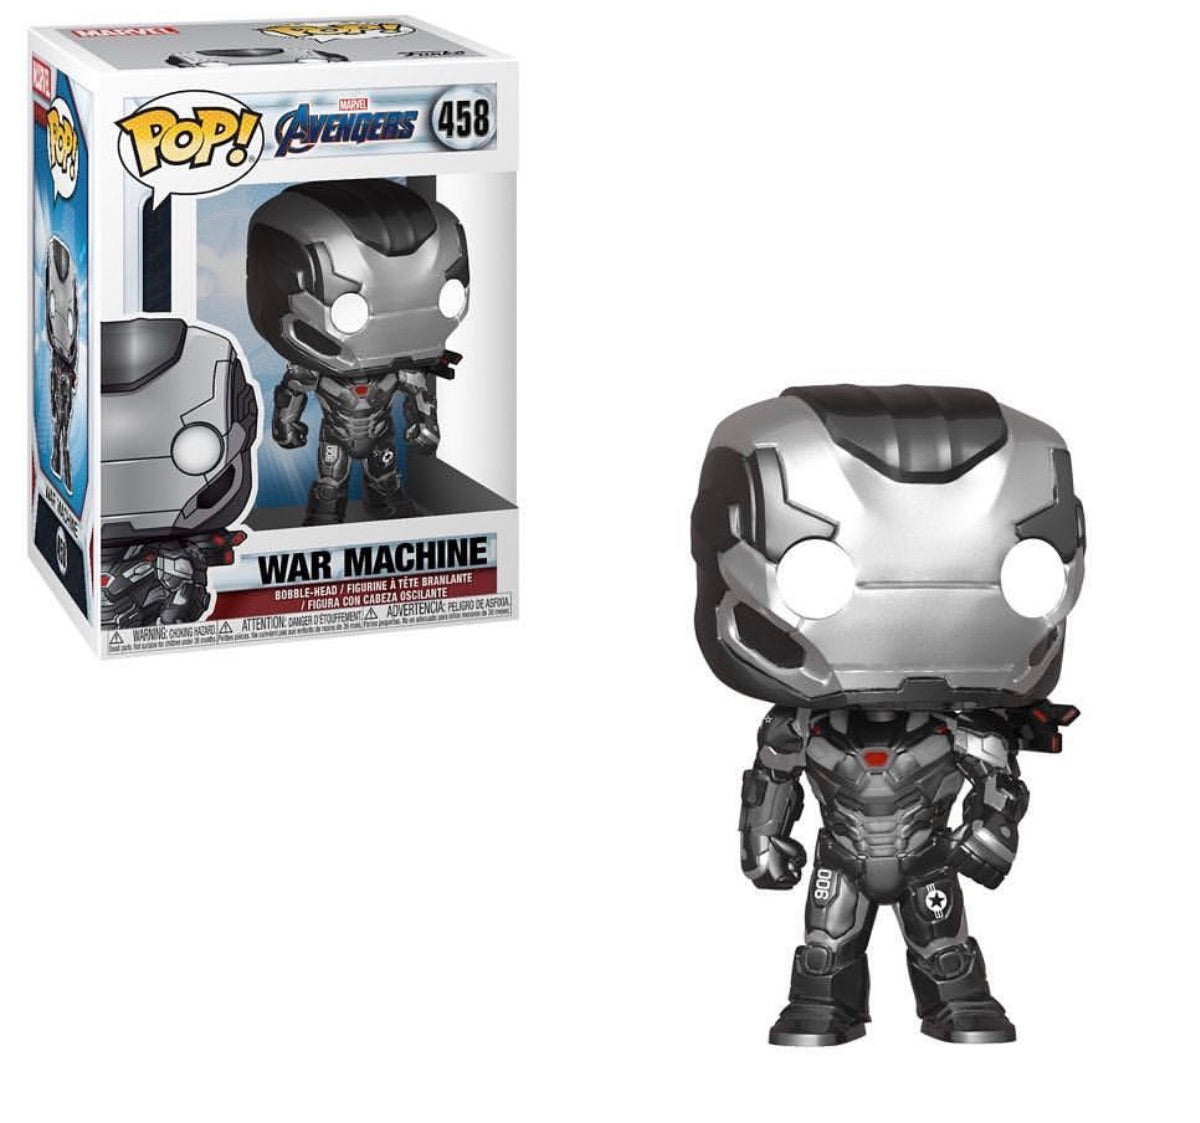 (Preorder) Avengers Endgame-War Machine